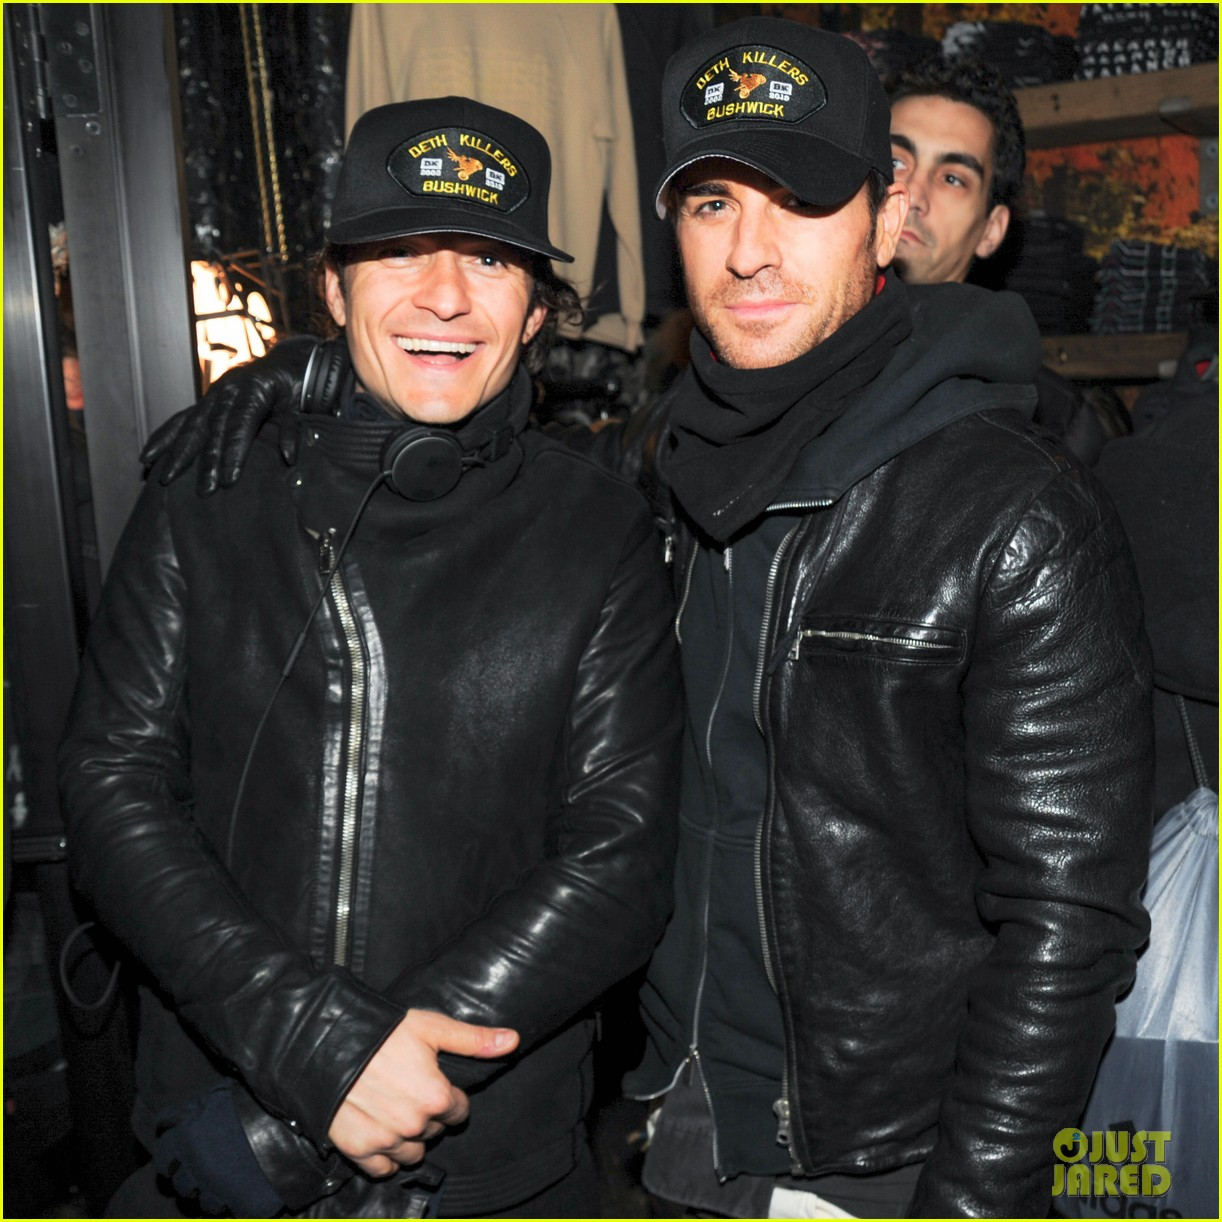 orlando bloom pops a wheelie meets justin theroux at deth killers event 11